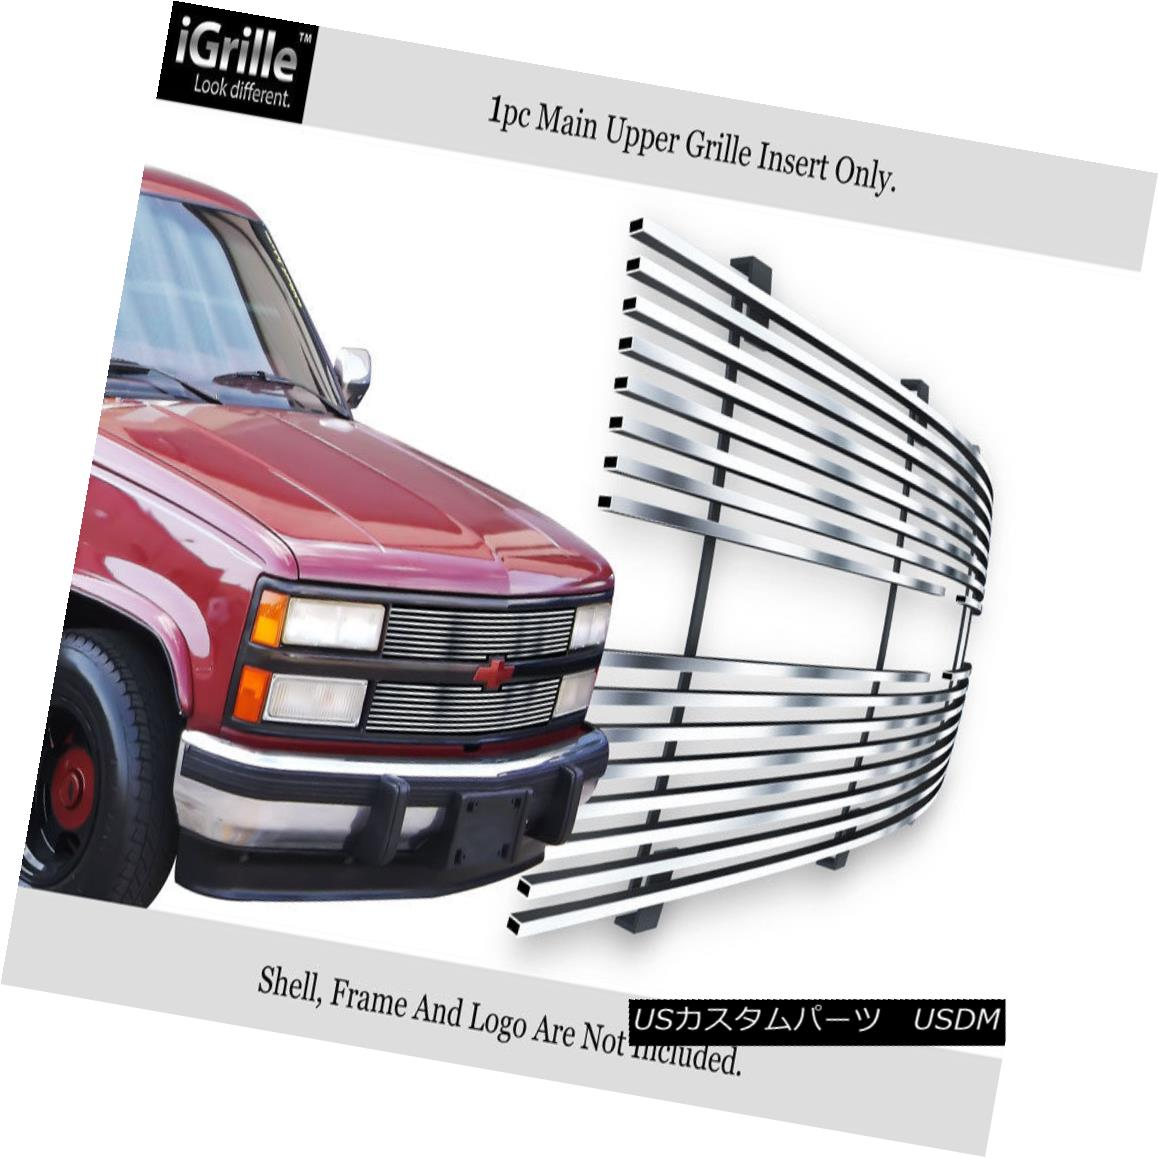 グリル For 88-93 Chevy C/K Pickup/Suburban/Blazer Stainless Steel Billet Grille 88-93 Chevy C / K Pickup / Suburba / Blazerステンレス鋼ビレットグリル